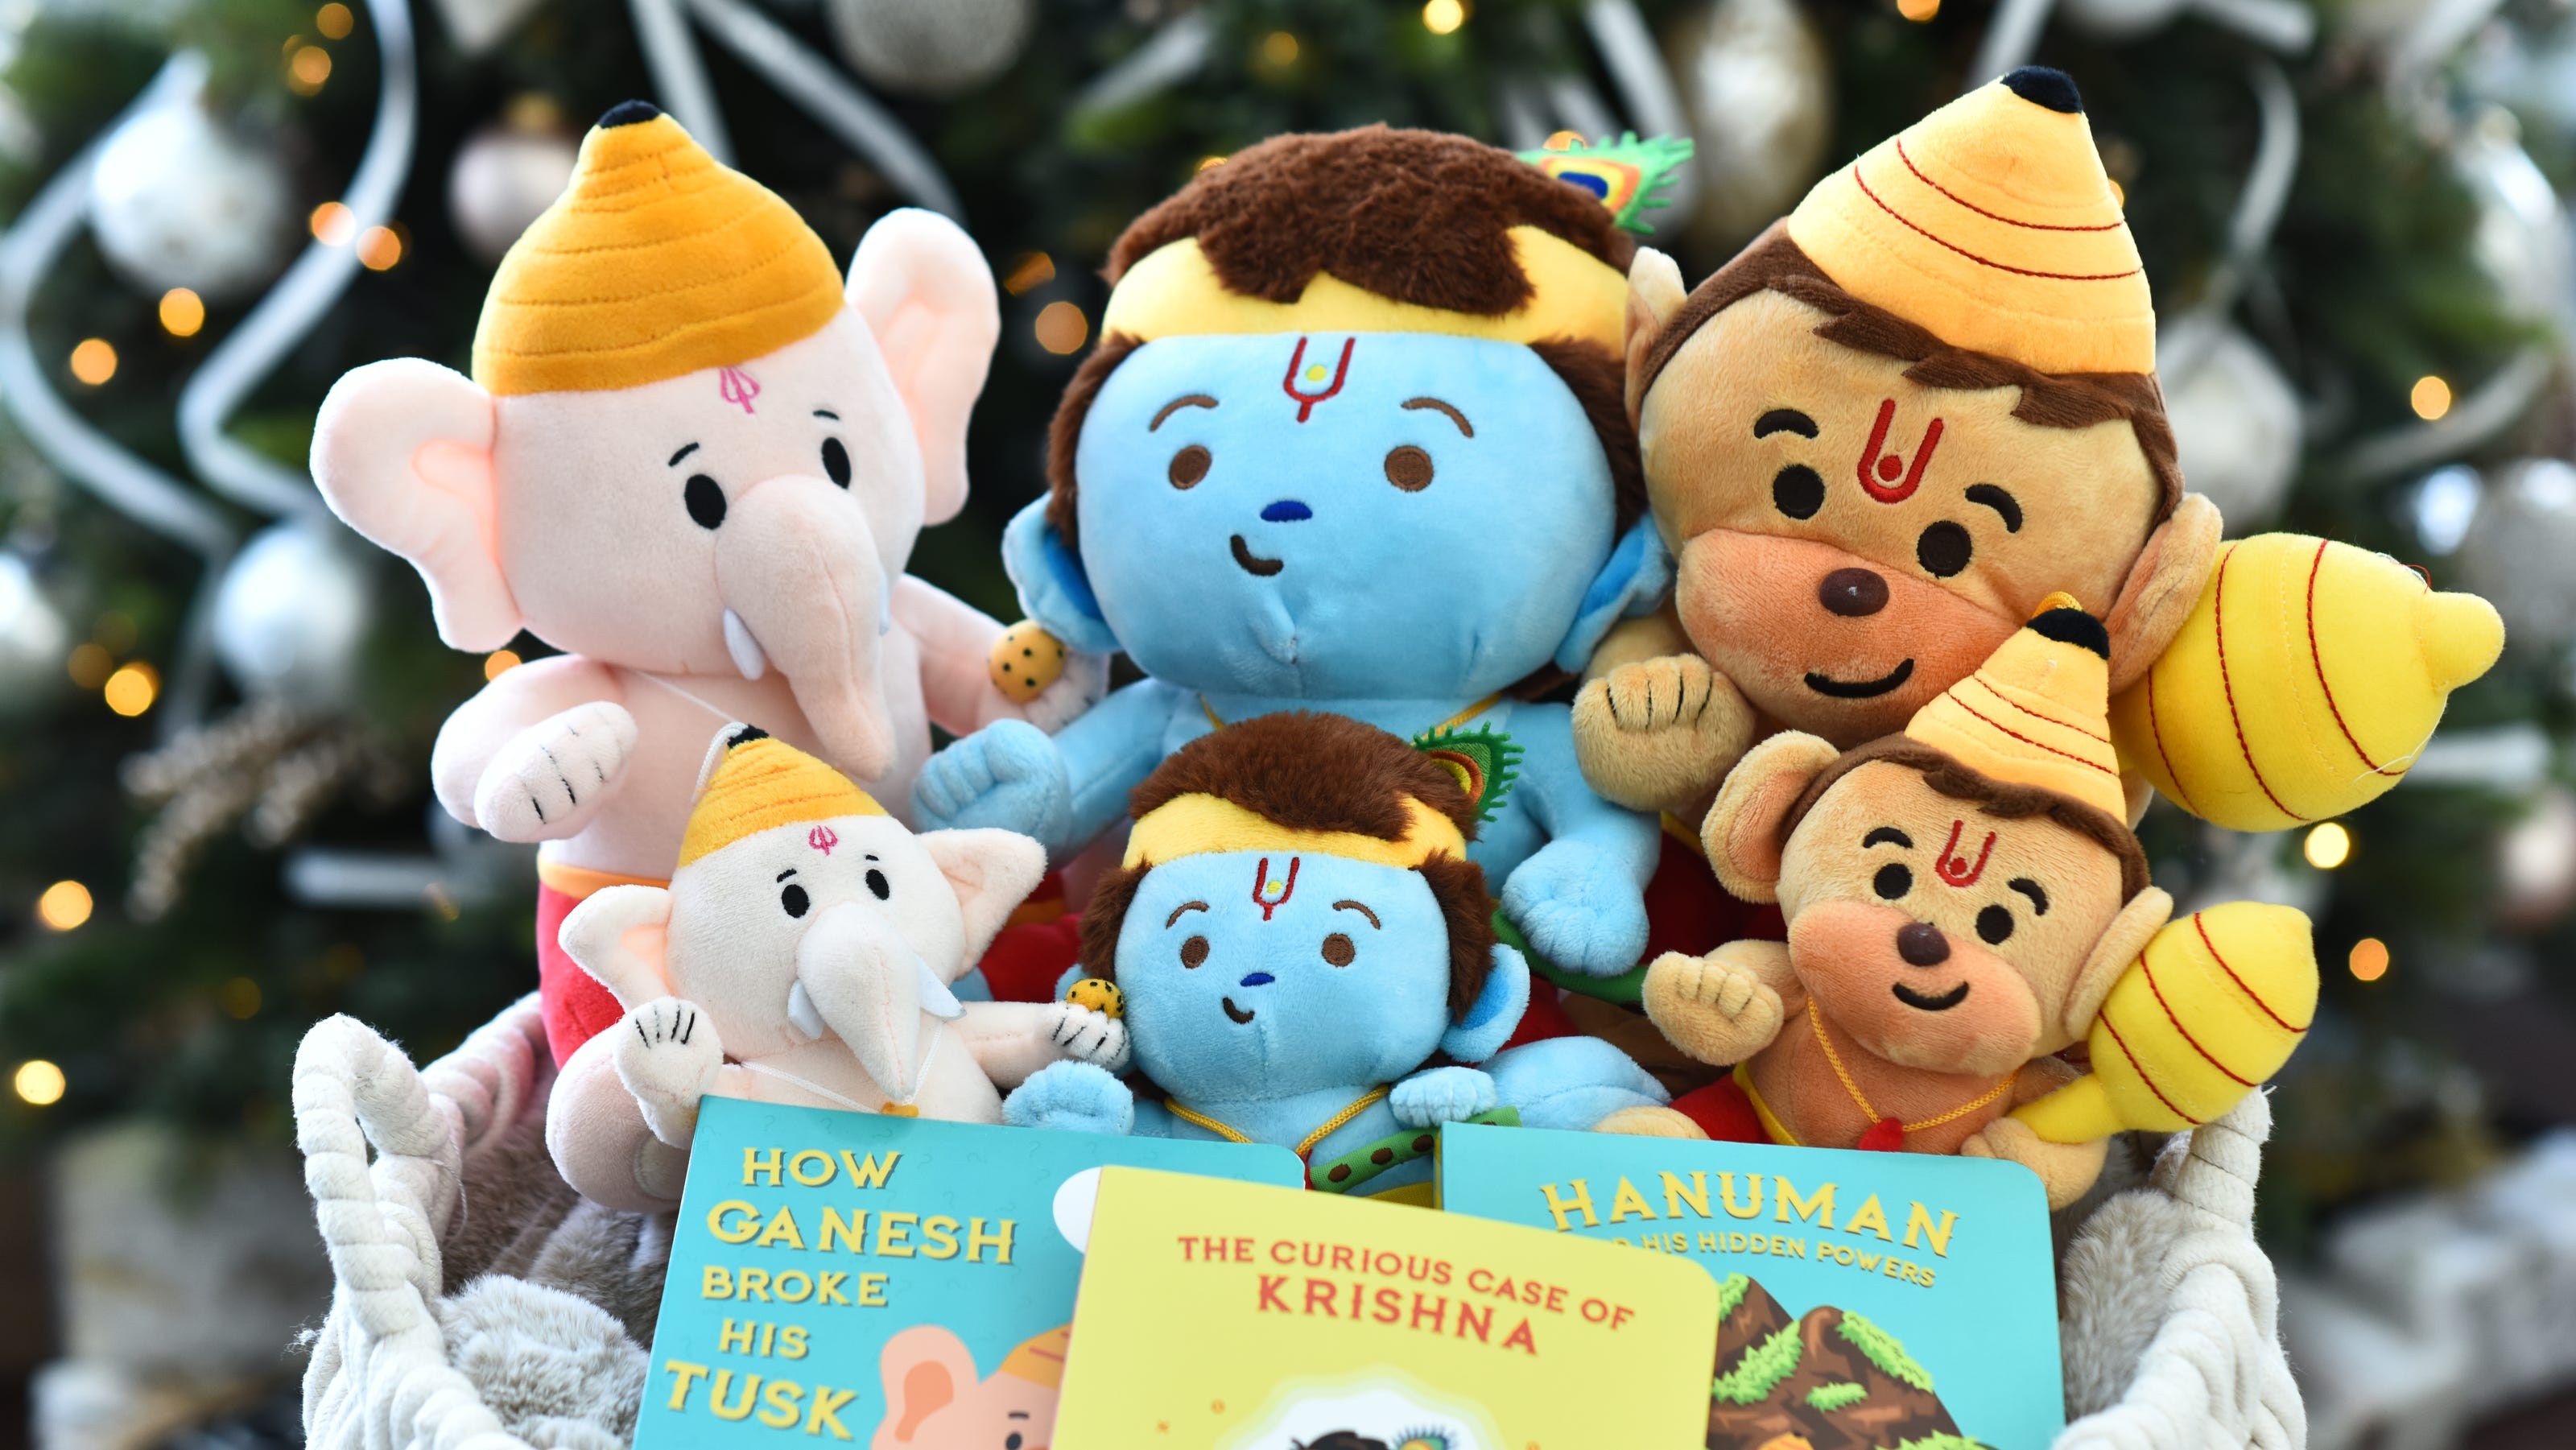 www.mycentraljersey.com: These toys promote Hindu faith and South Asian culture in a fun and meaningful way